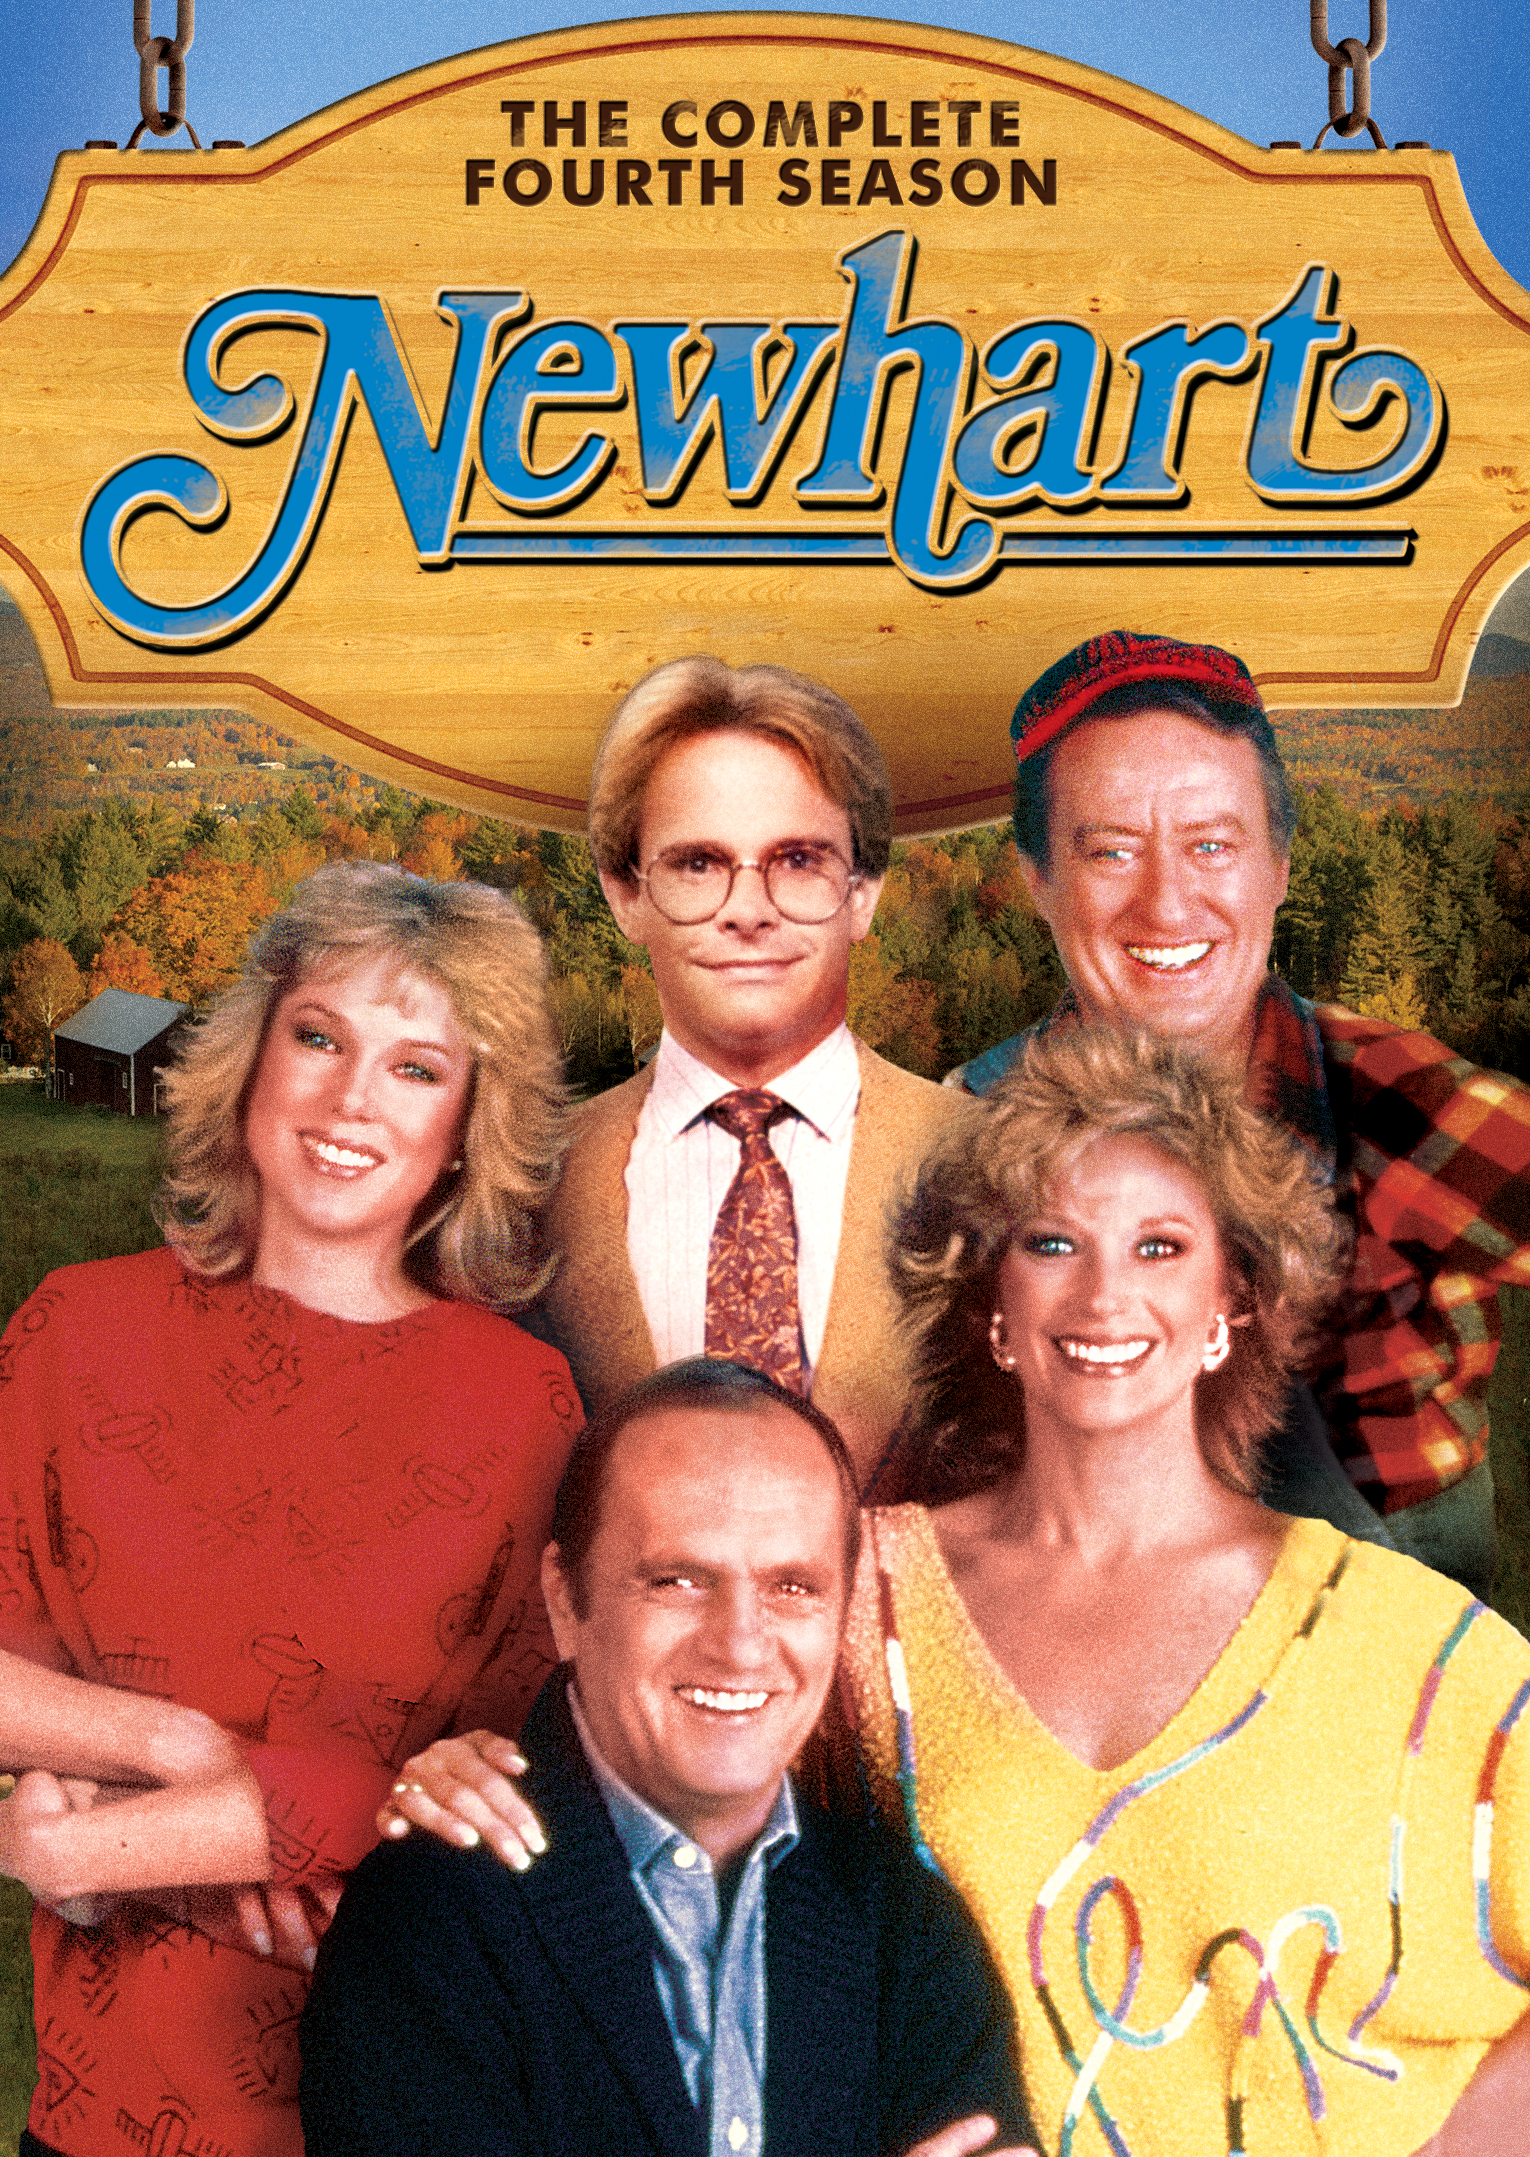 An author and his wife run a quaint country inn in Vermont. Newhart stars  BOB NEWHART as Dick Loudon, MARY FRANN as Joanna Loudon, TOM POSTON as  George ...